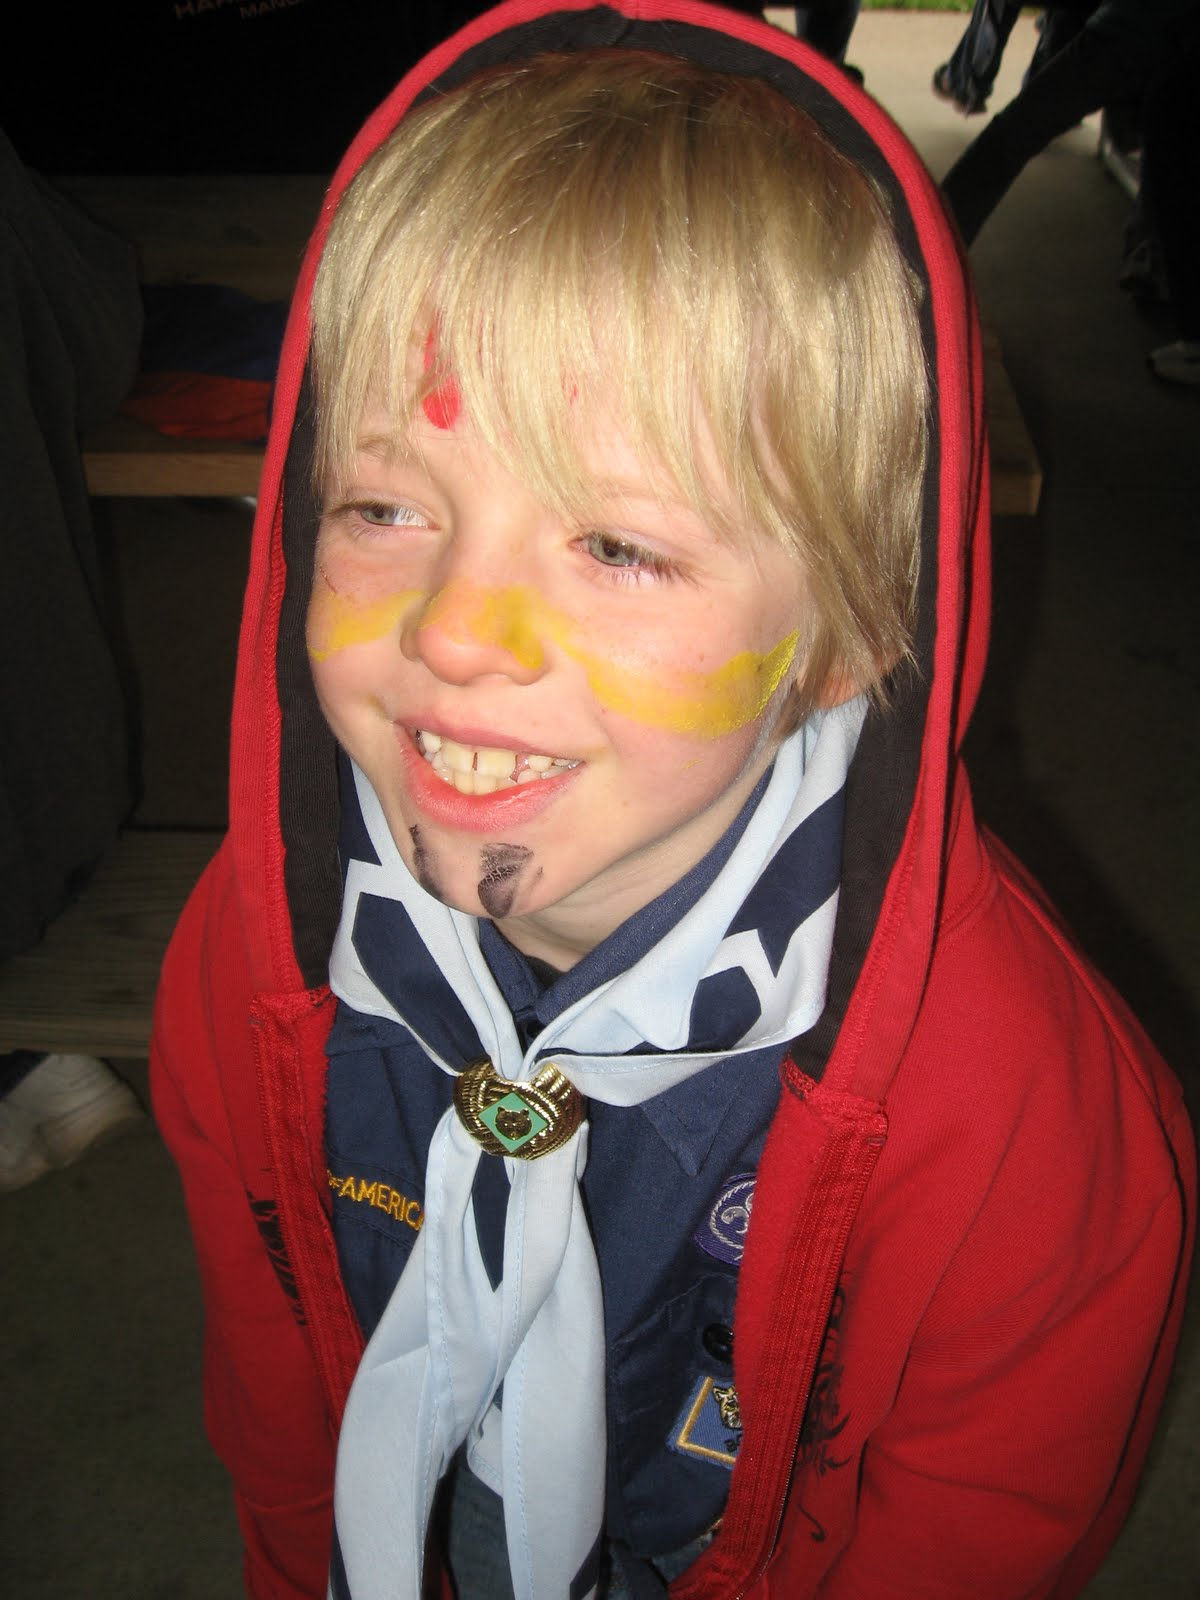 Cub Scout Arrow Of Light Face Painting